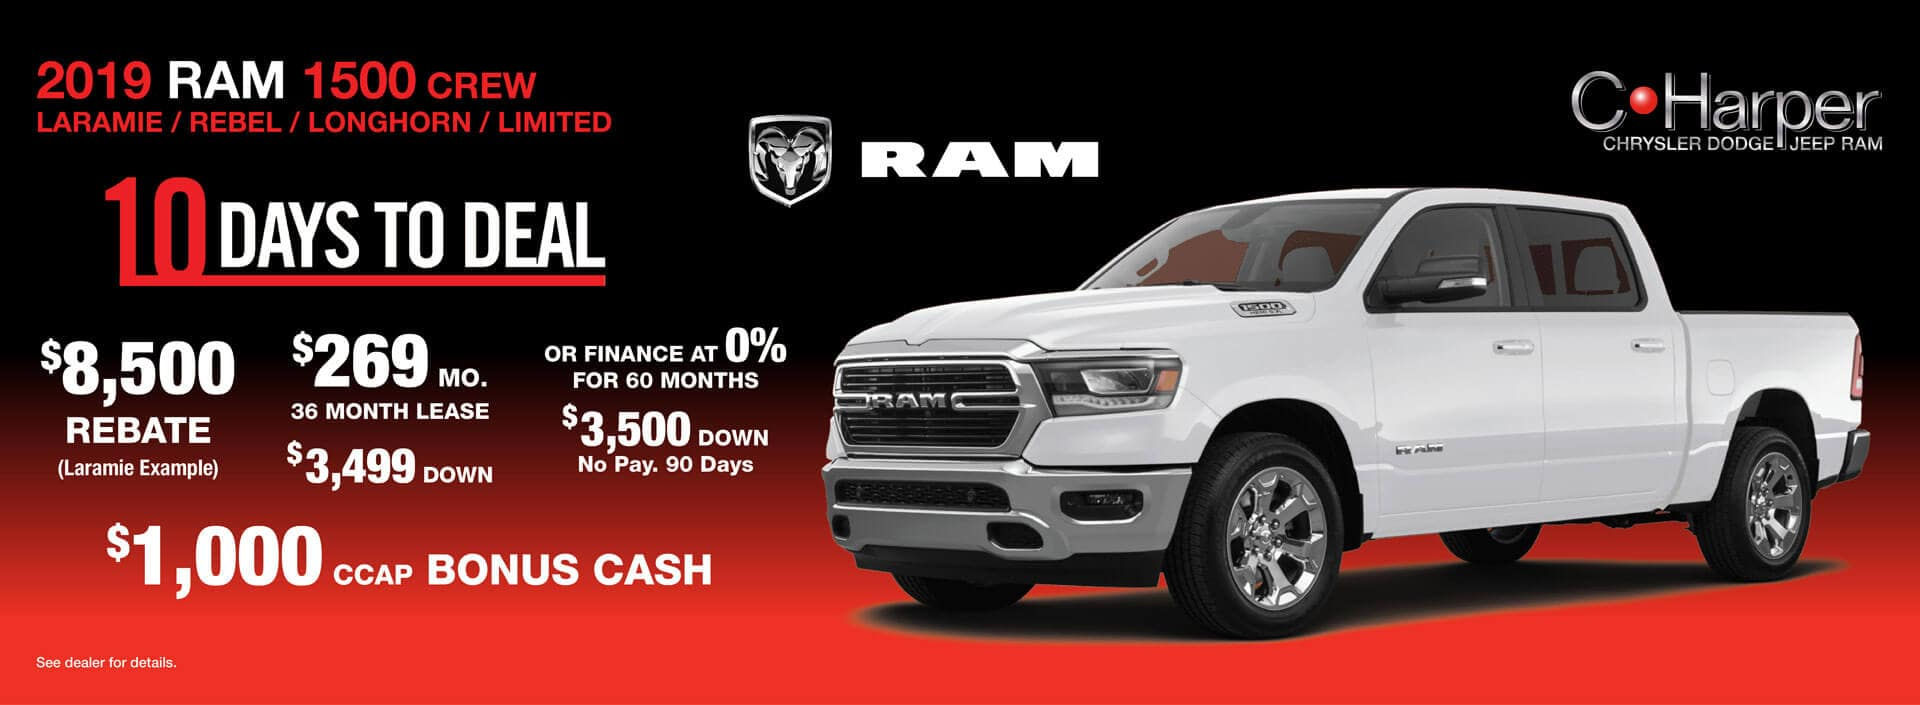 10 Days to Deal: Ram 1500